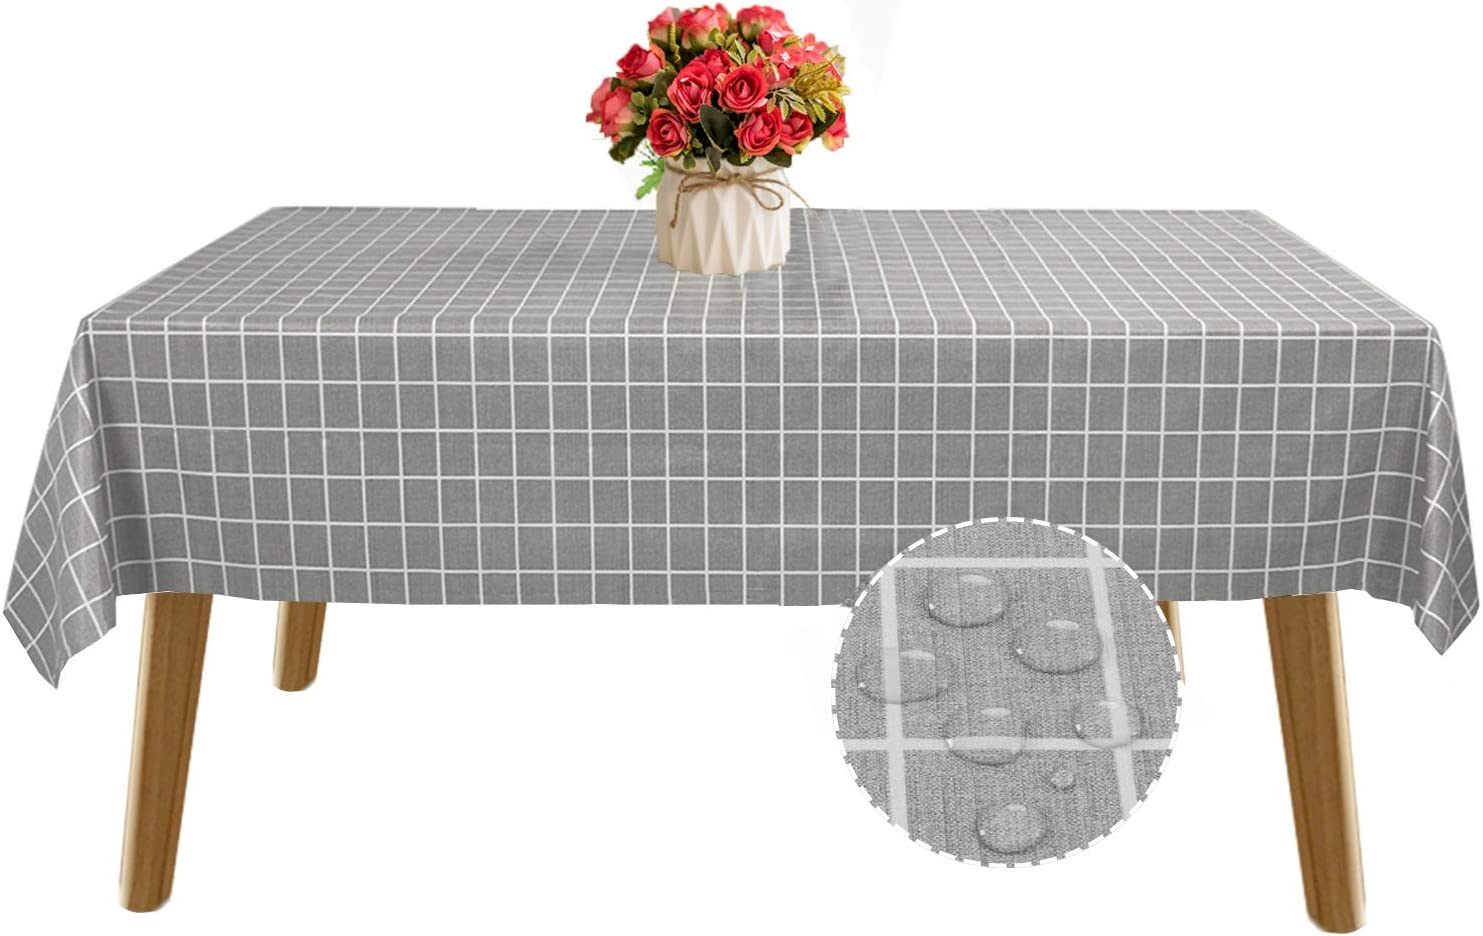 Table Cloth Waterproof Limited Special Price Oil-Proof PVC Indoor Cover for discount Outd